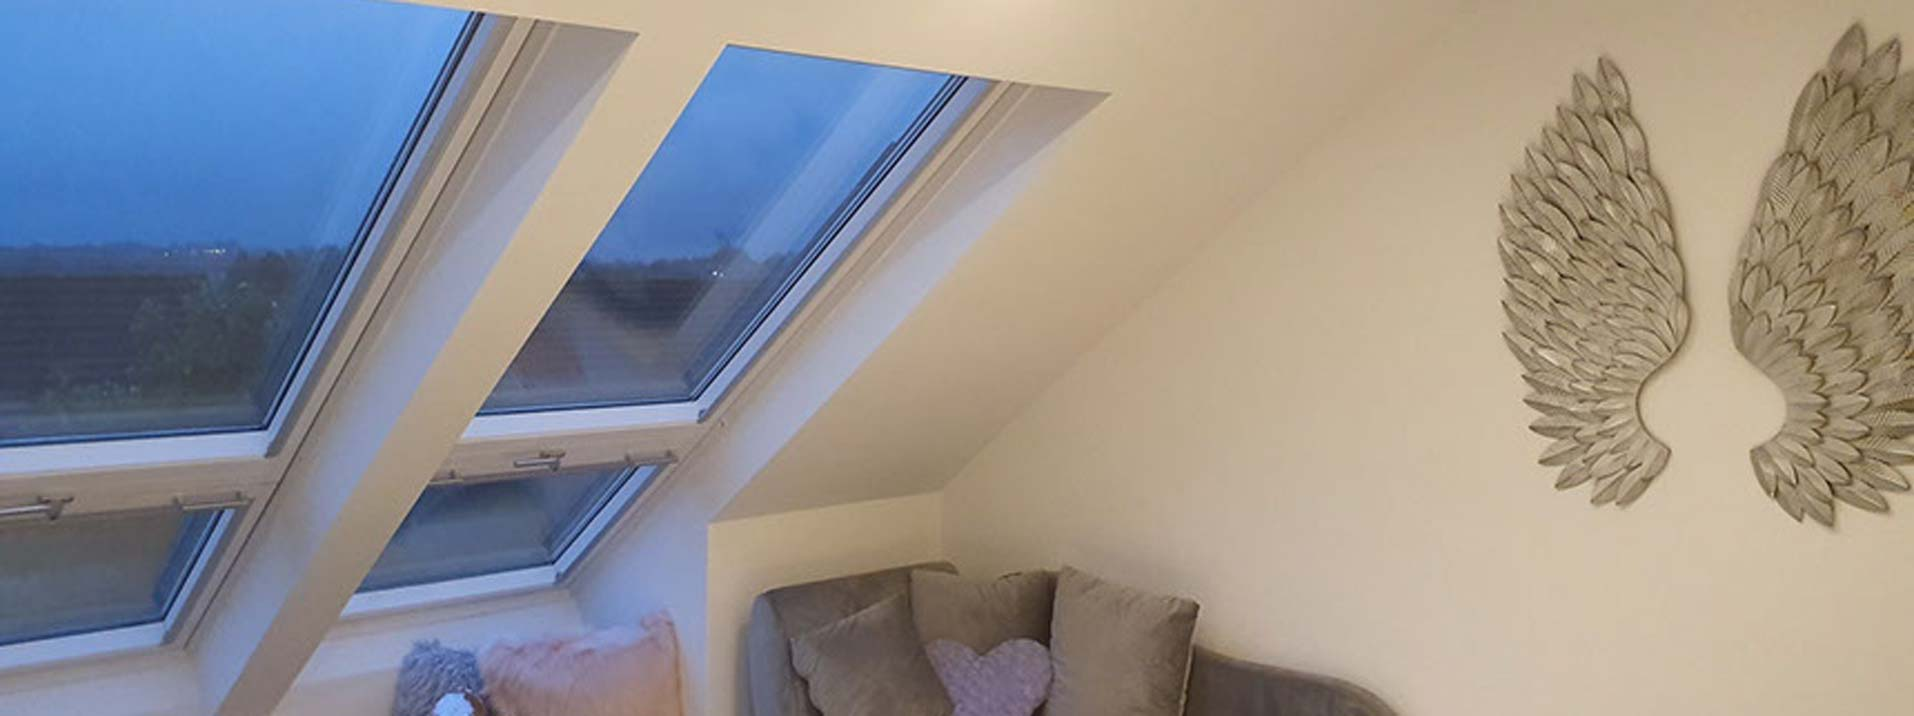 Completed loft conversion with velux windows